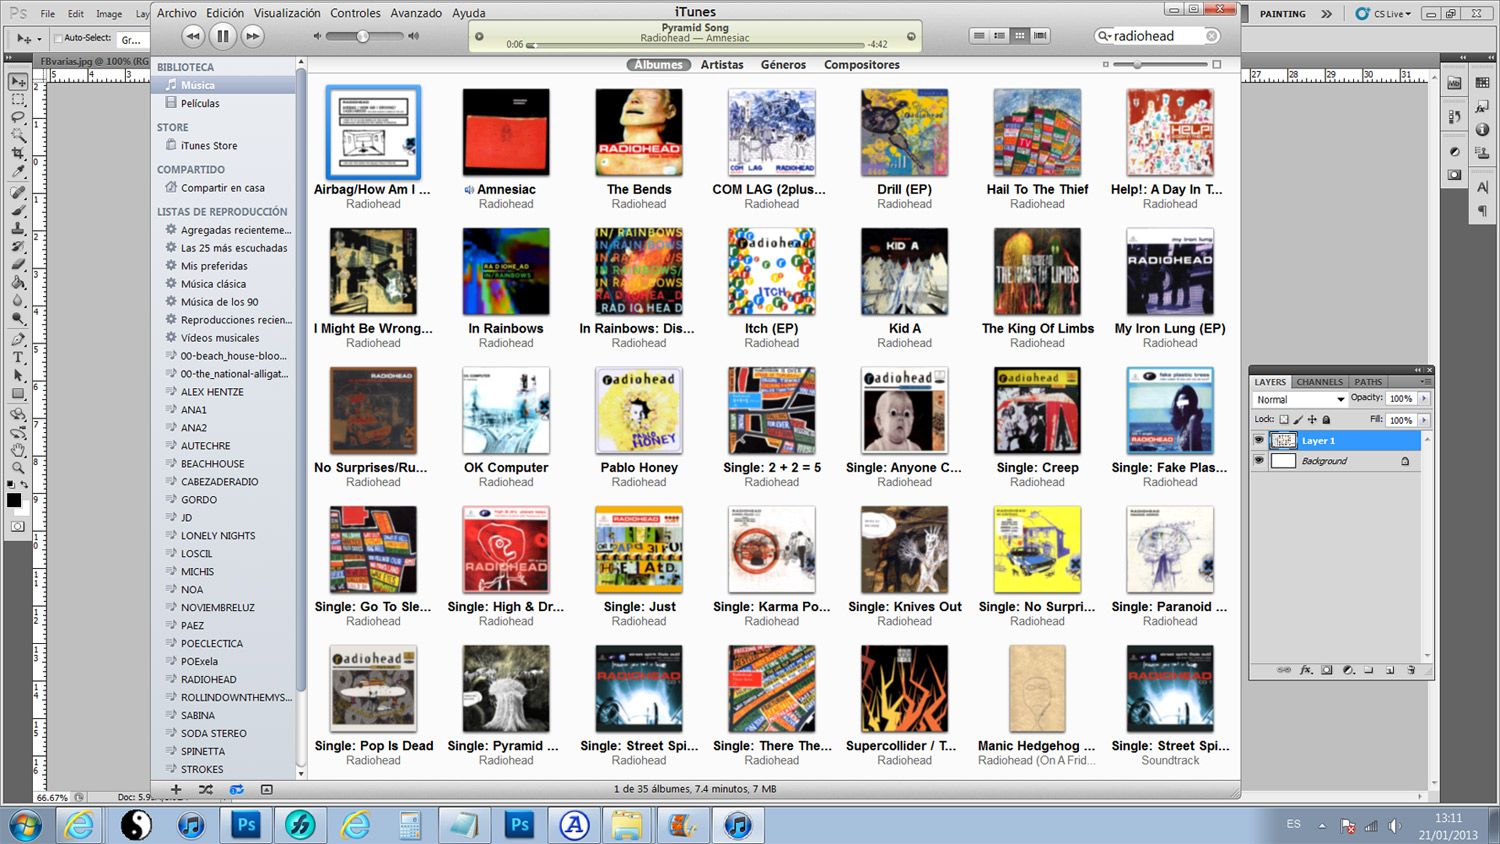 SCREENSHOTradiohead-itunes